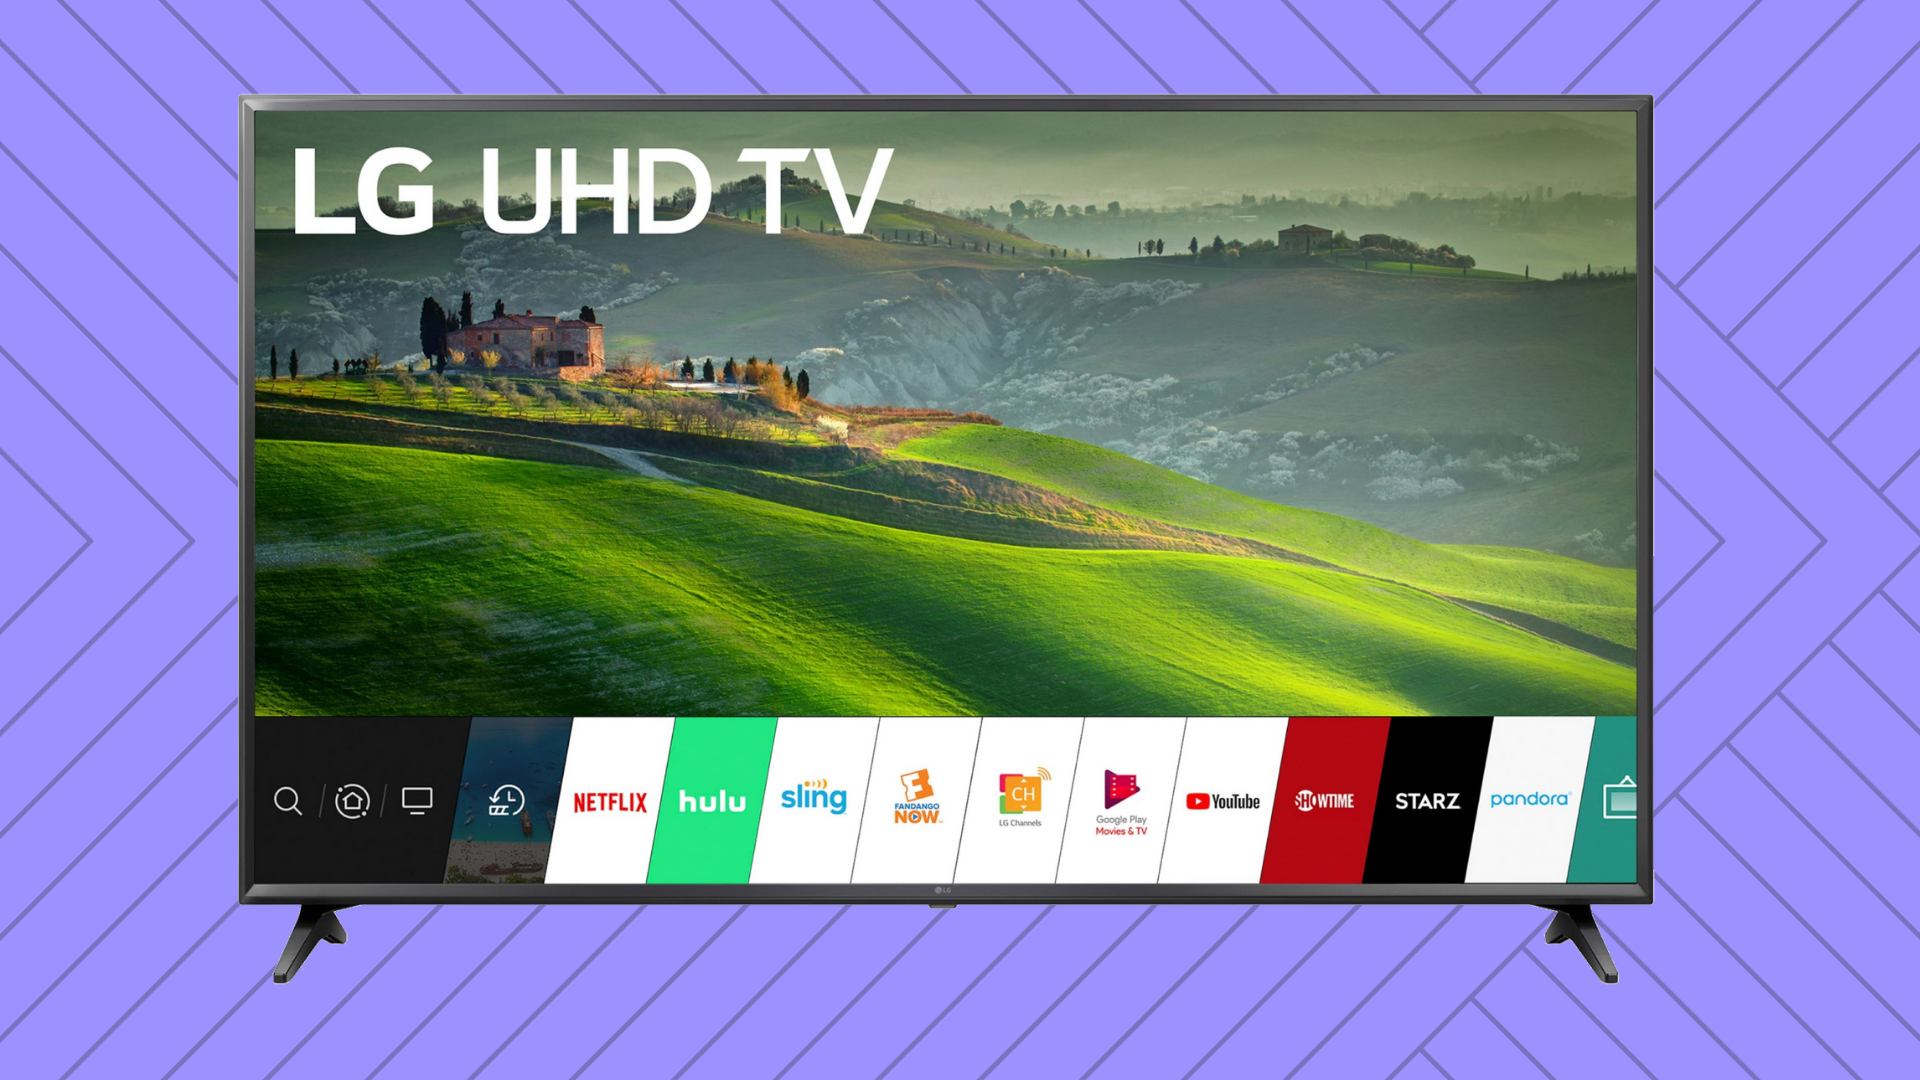 Score this massive LG 65-inch 4K LED TV for just $478 at Walmart—it's the lowest price on the web right now